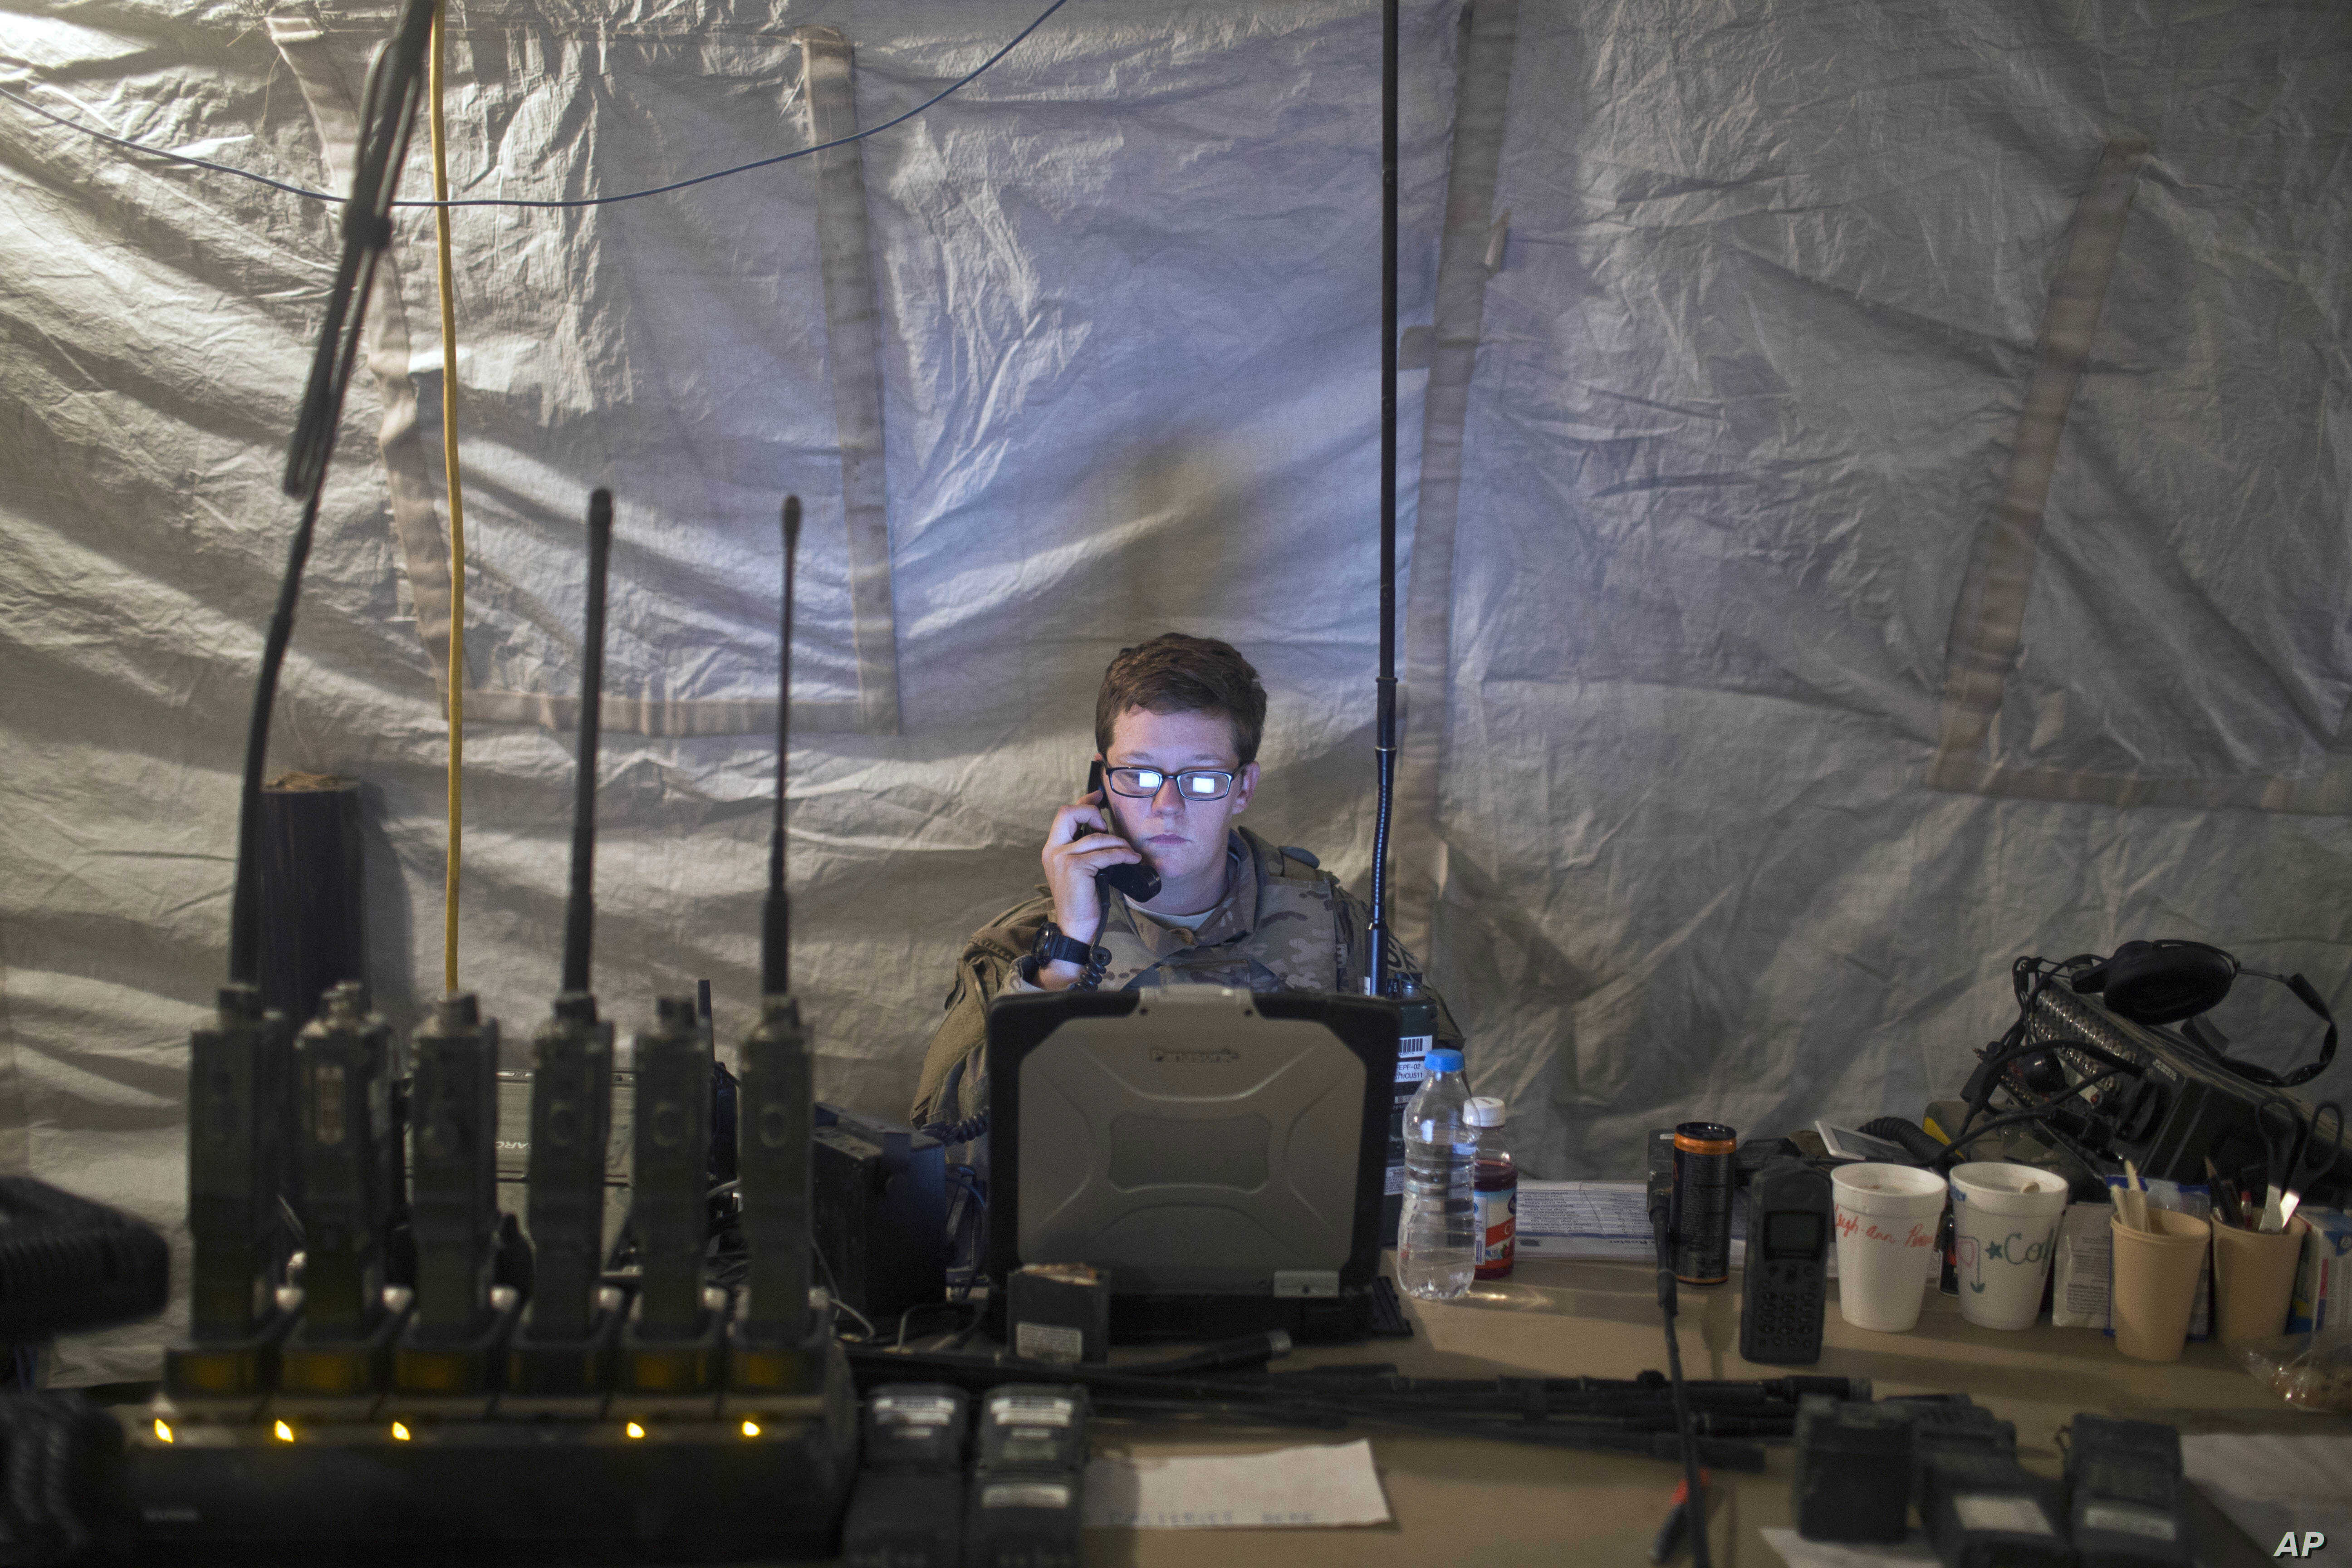 A U.S. Air Force service member uses radio communication at the command and control center inside a coalition air base in Qayara, some 50 kilometers south of Mosul, Iraq, Oct. 28, 2016. The U.S. military says Iraqi forces have retaken 40 villages fro...